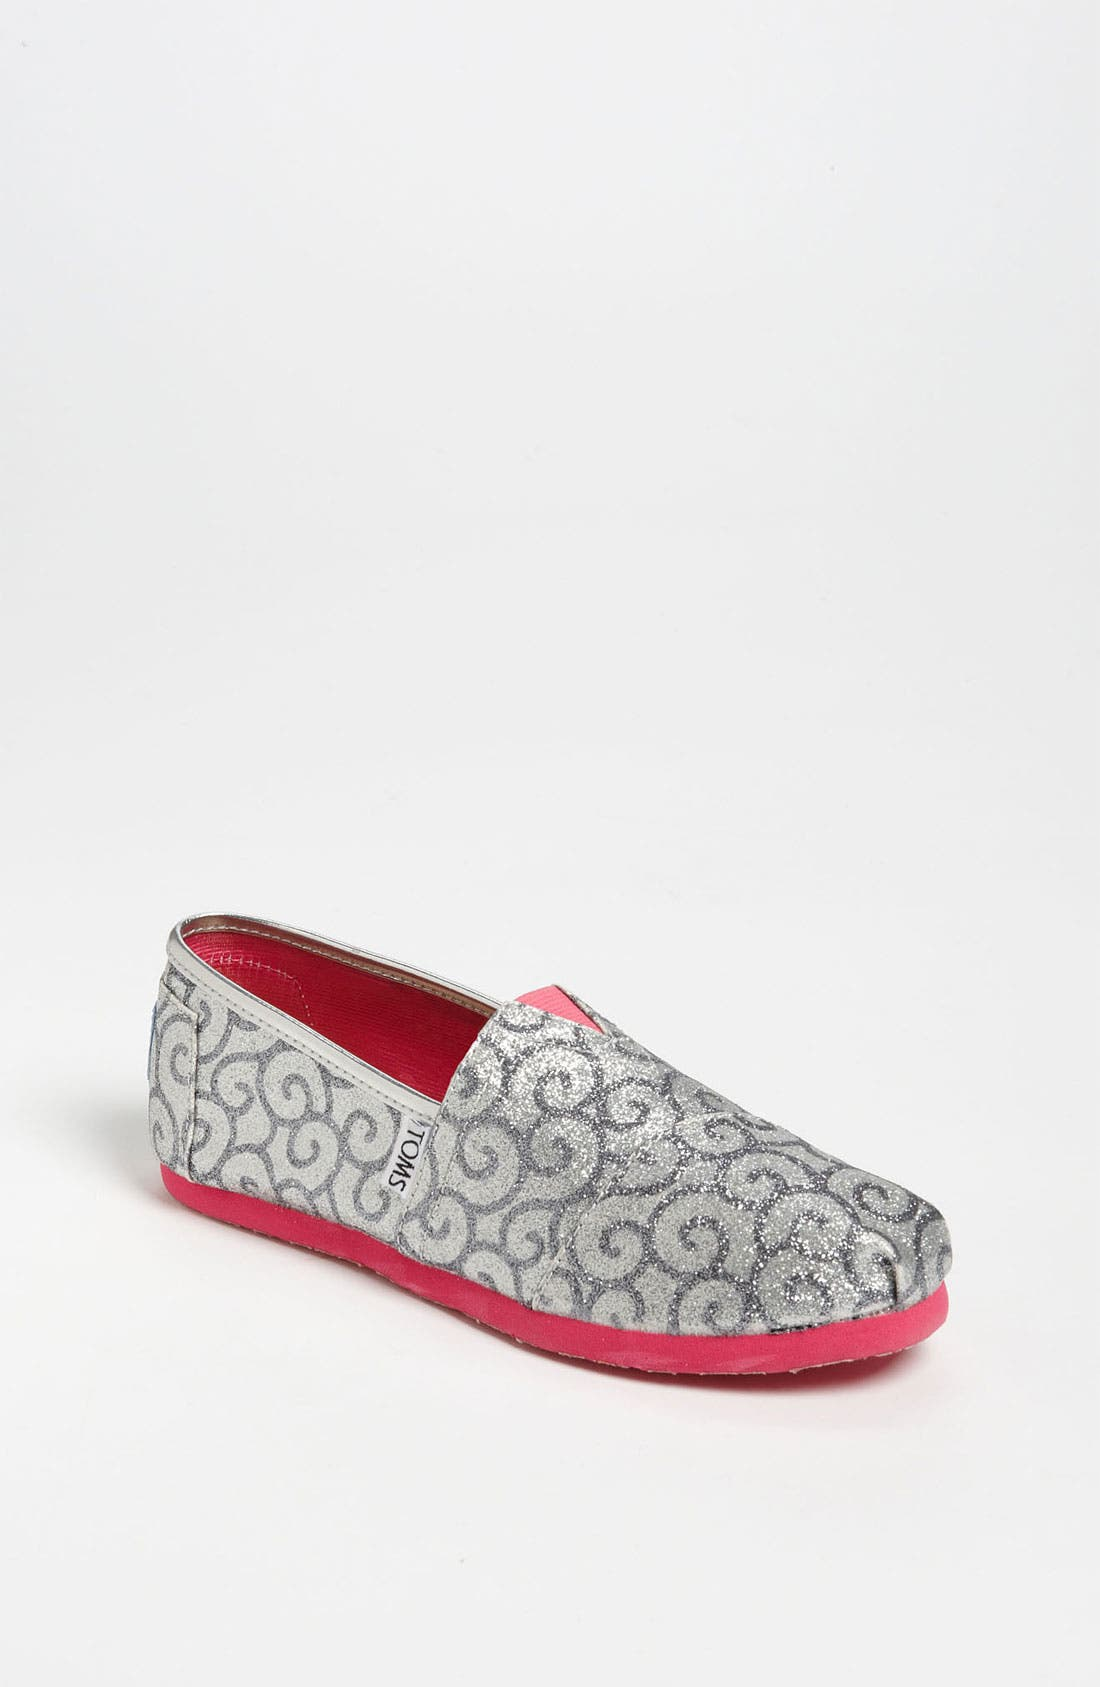 Alternate Image 1 Selected - TOMS 'Classic Youth - Block Glitter' Slip-On (Toddler, Little Kid & Big Kid)